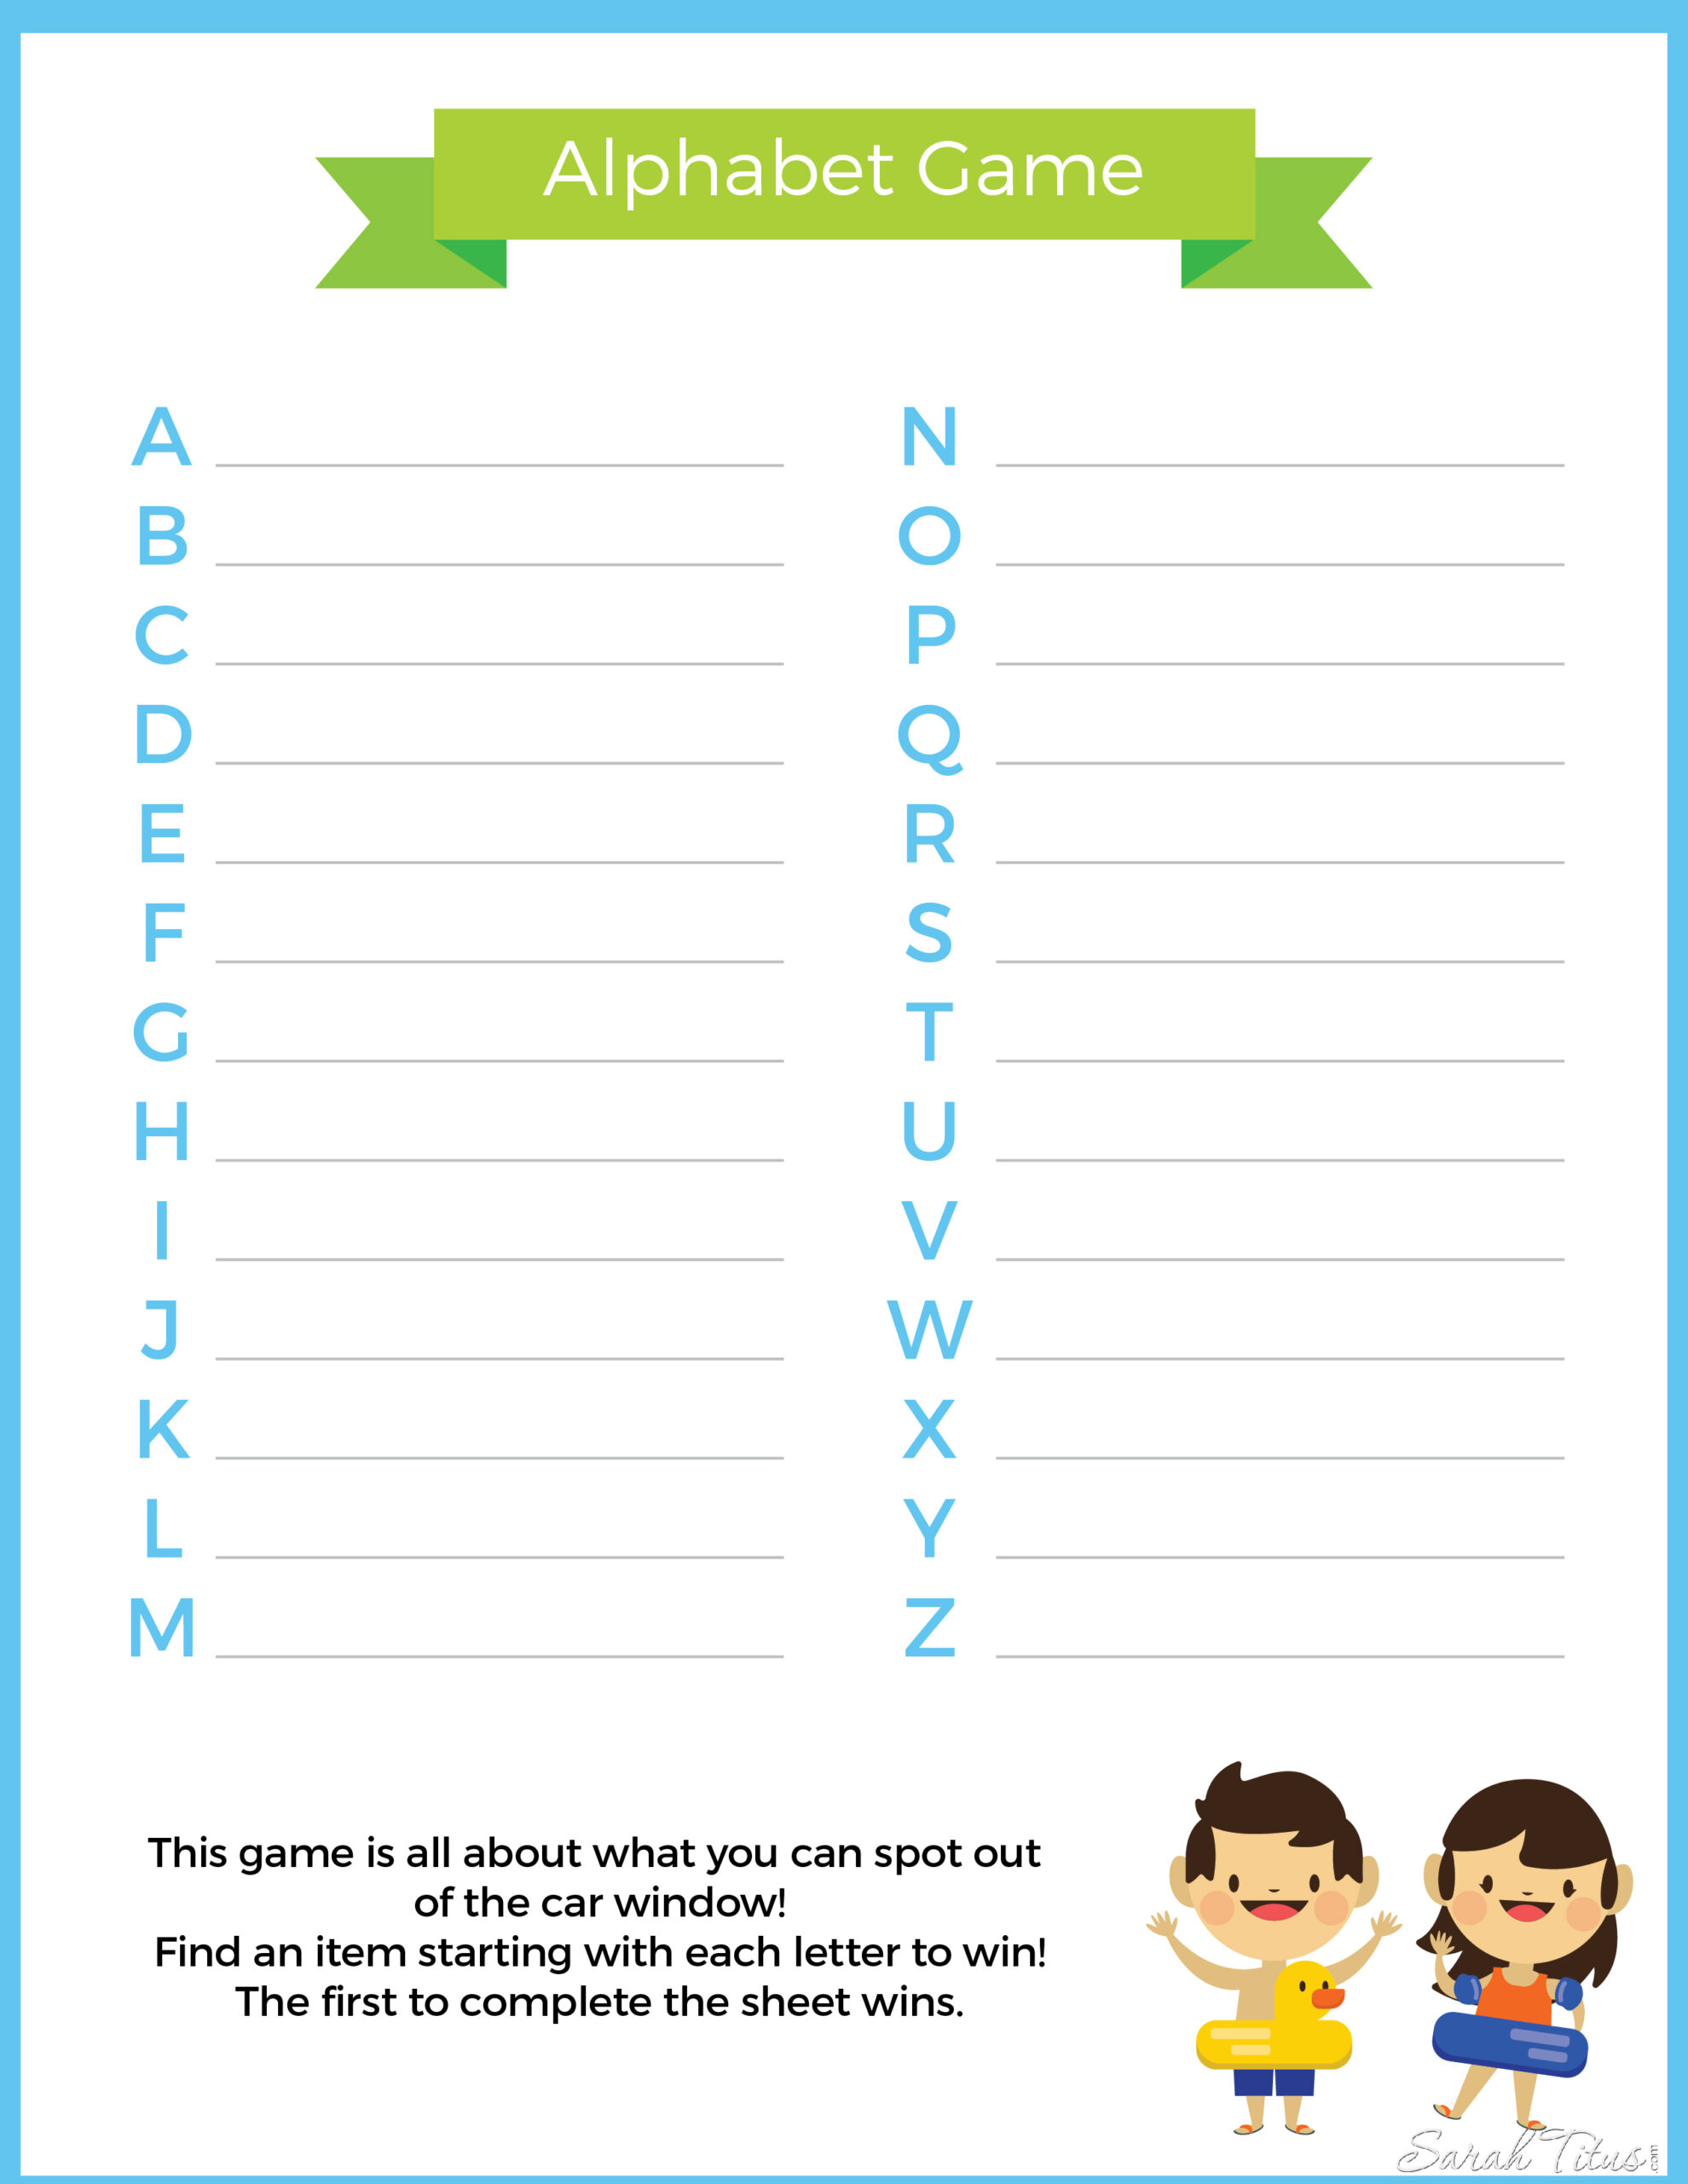 Travel Binder Alphabet Game